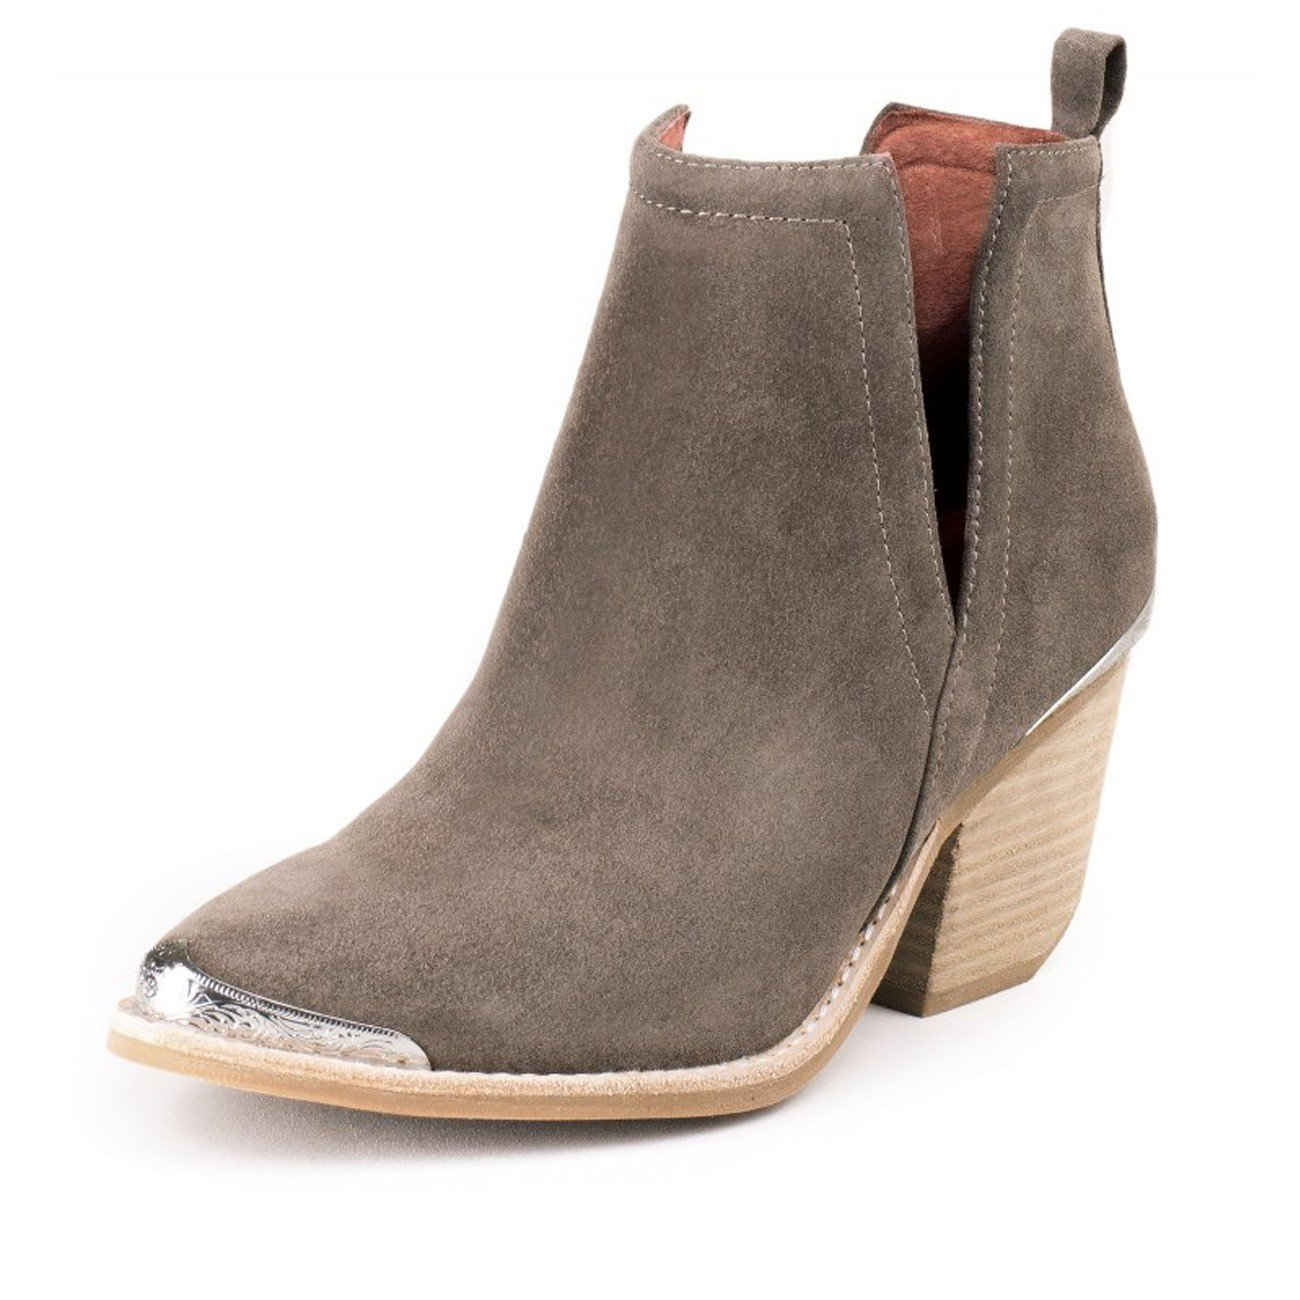 Jeffrey Campbell'Cromwell, taupe distressed suede B01MY2EU0M 9 B(M) US